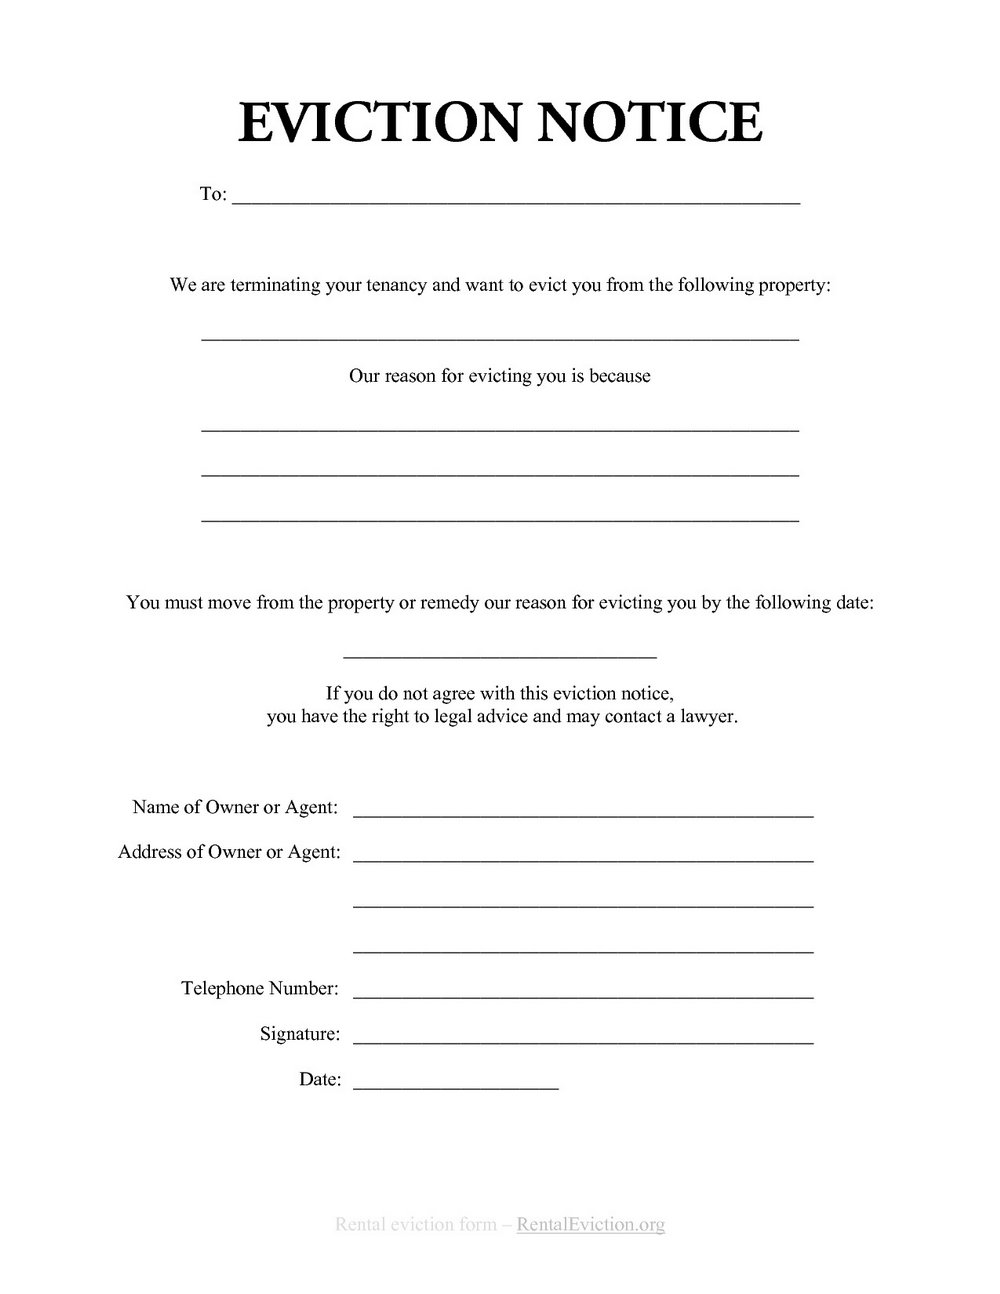 Eviction Notice Format